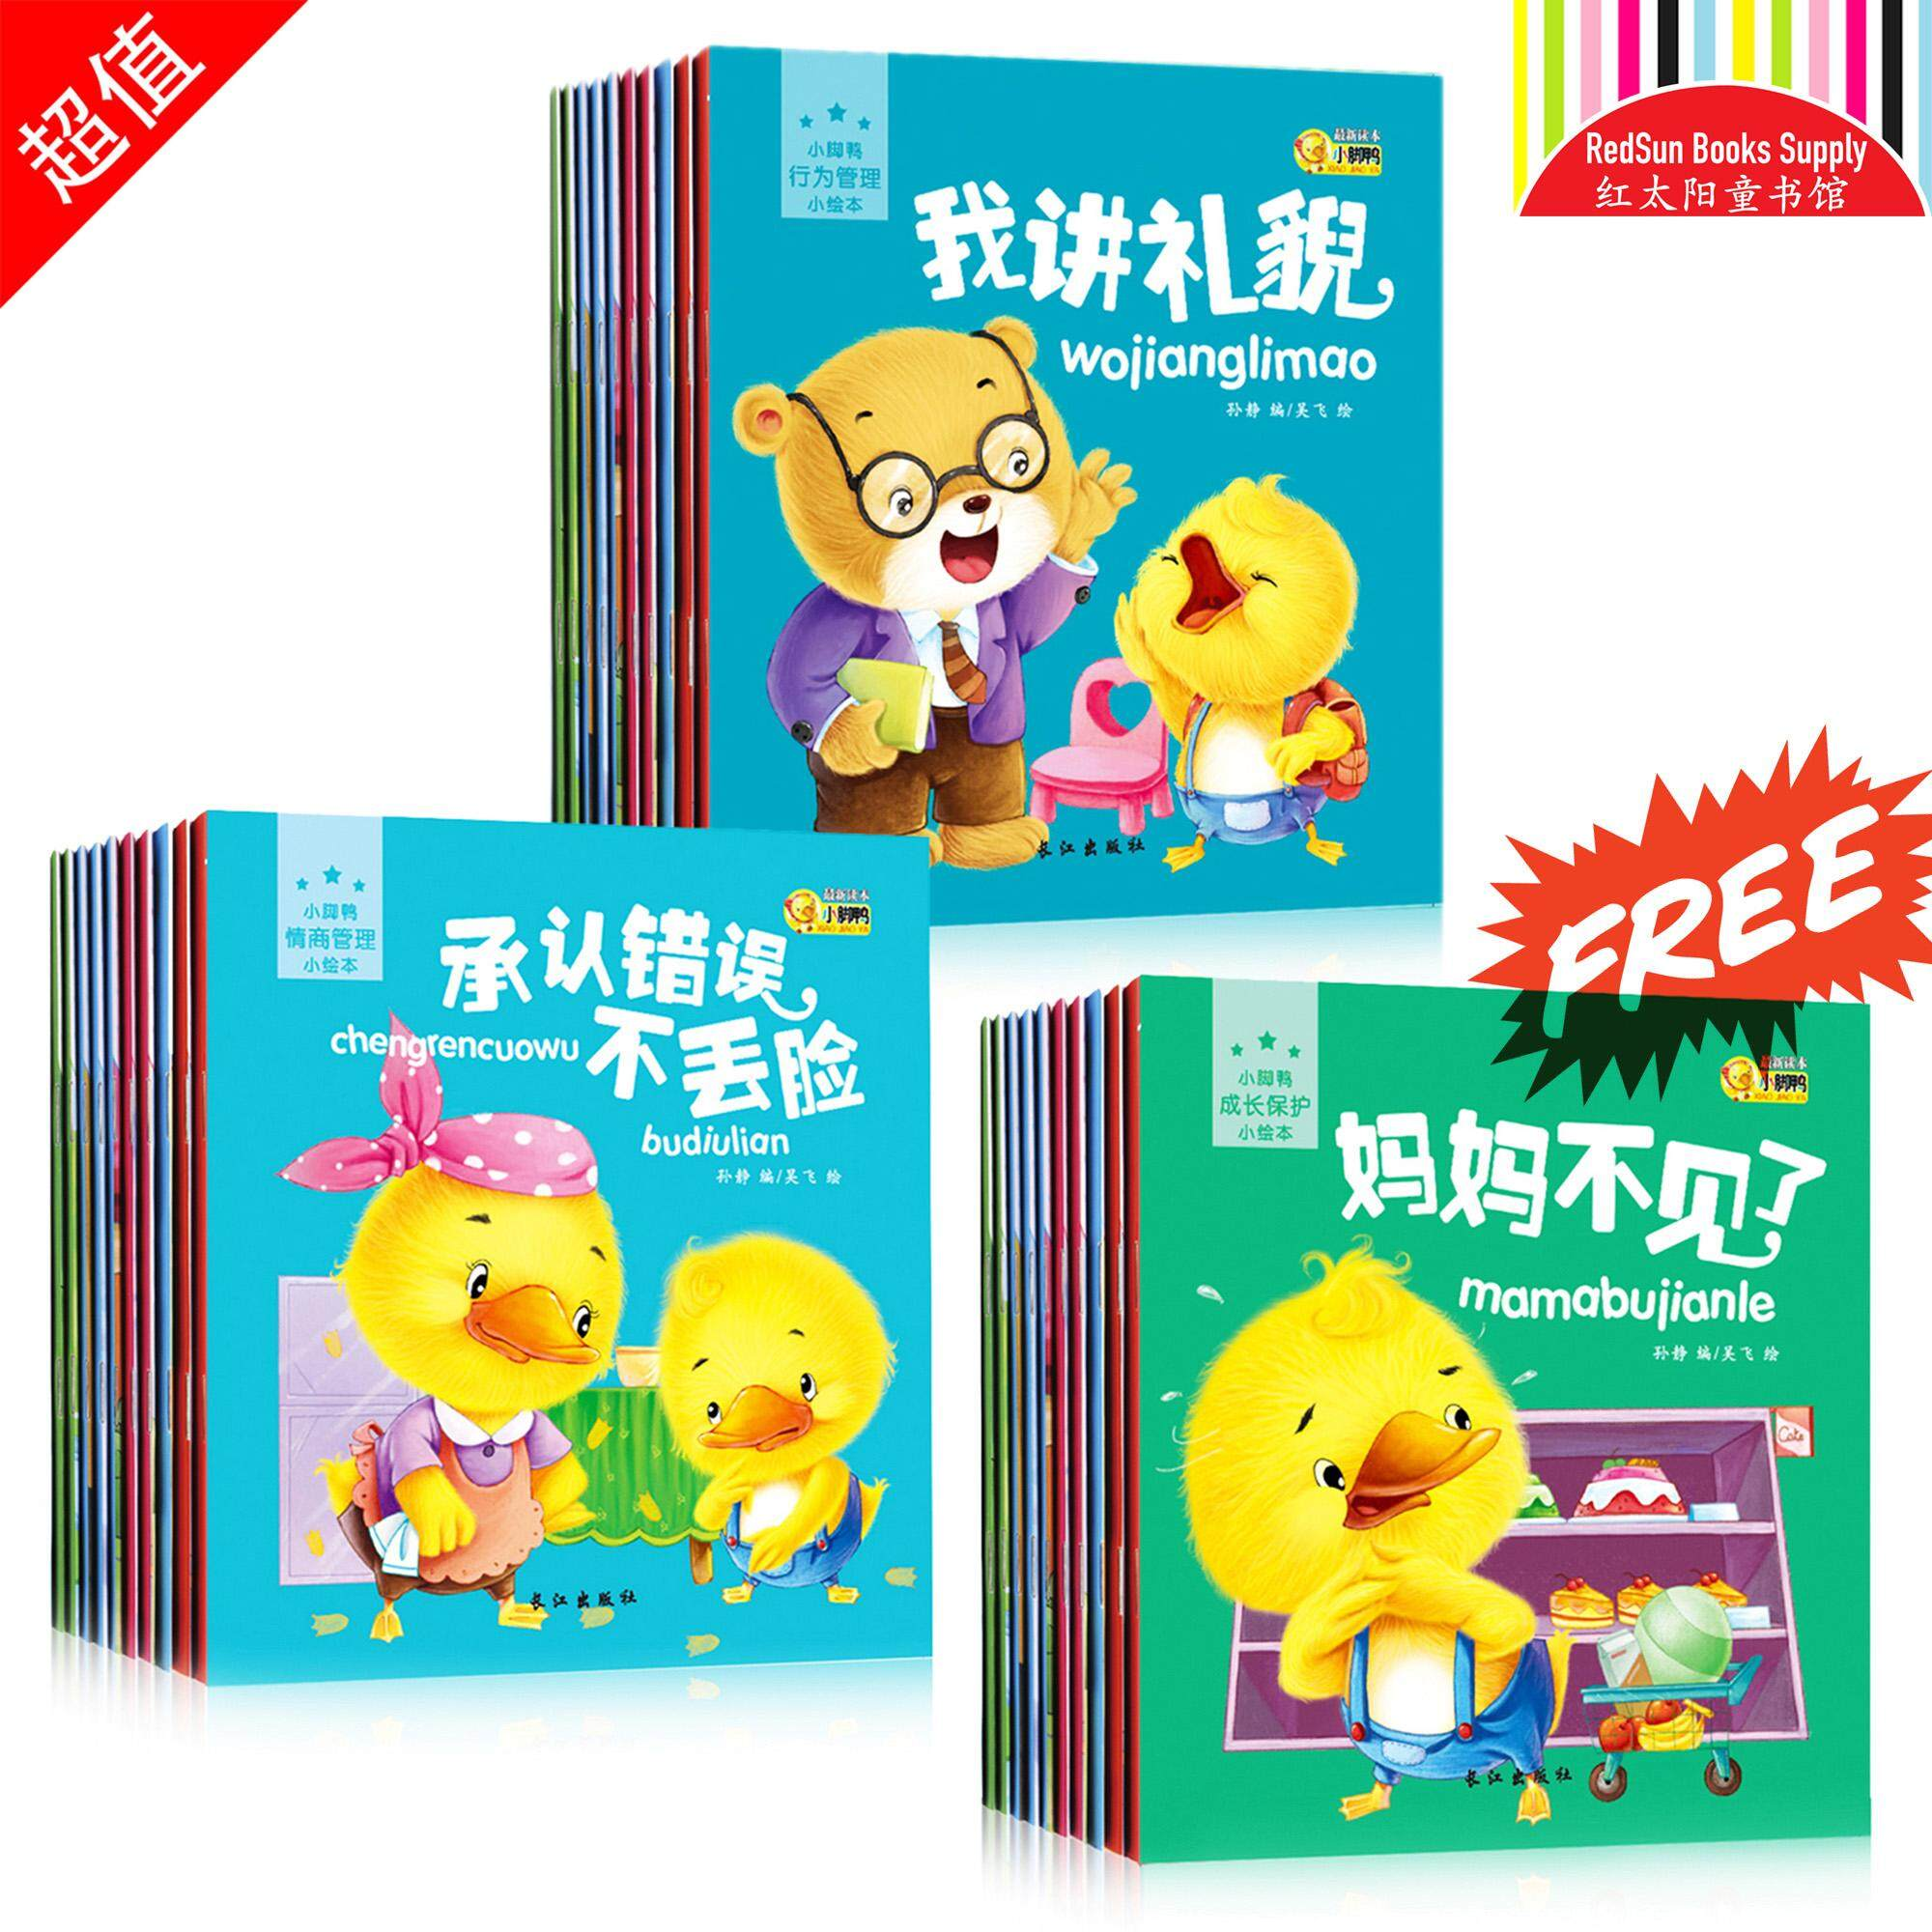 Buy 2 Free 1 EQ + Behavioral Management Free Growth Protection Kid's Picture Book (20 + 10 Books)